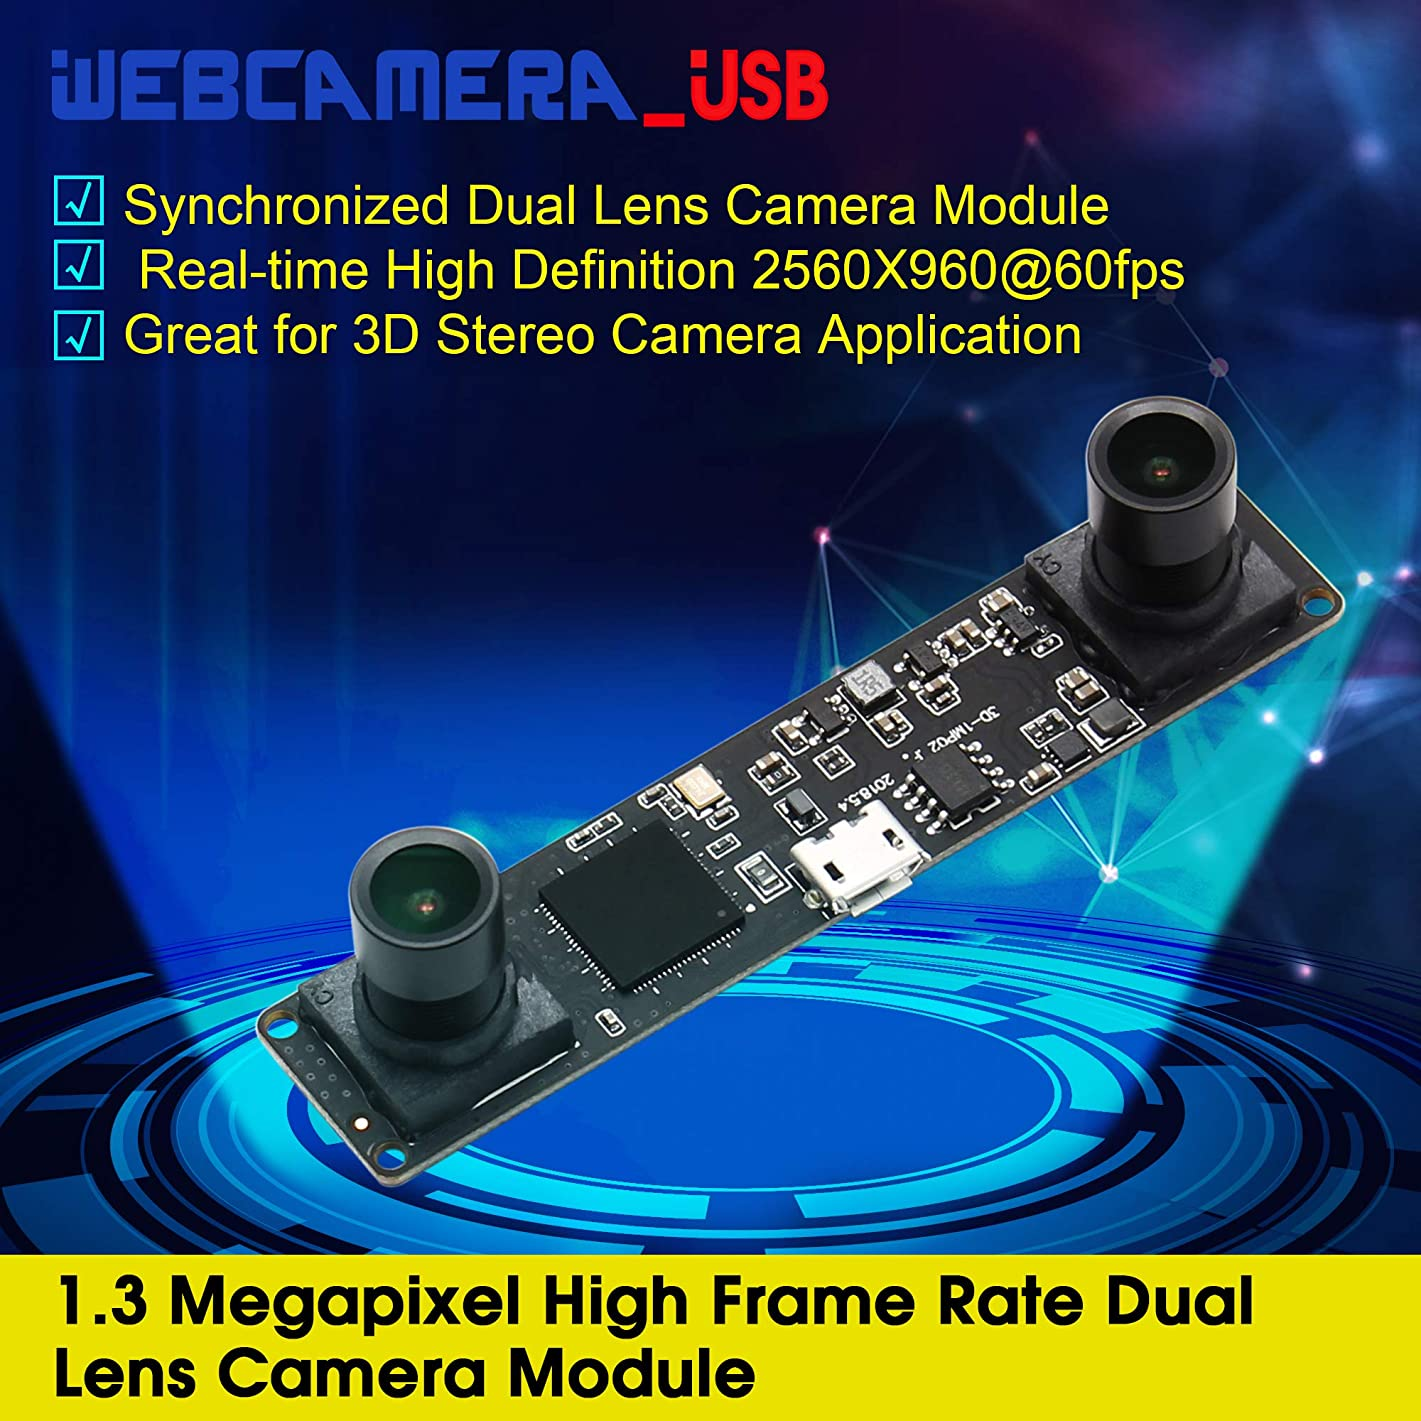 Dual Lens Stereo Camera Mini Industrial USB2.0 Webcam Module,Synchronized Web USB Security Camera for 3D VR,People Counting System,Stereoscopic Computer Vision,Webcam Module for Android,Linux,Windows